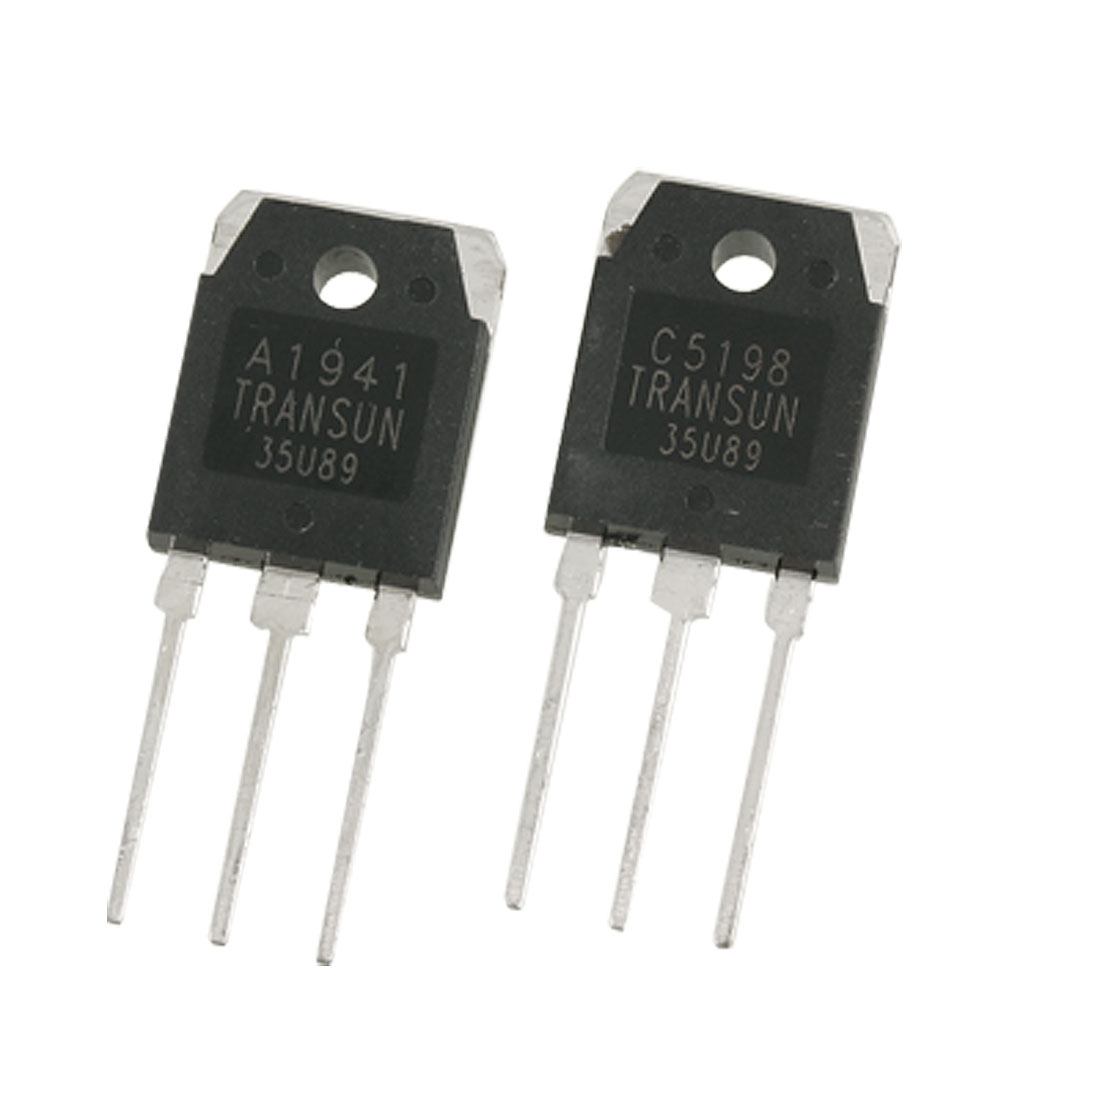 Pair A1941 + C5198 10A 200V Power Amplifier Silicon Transistor